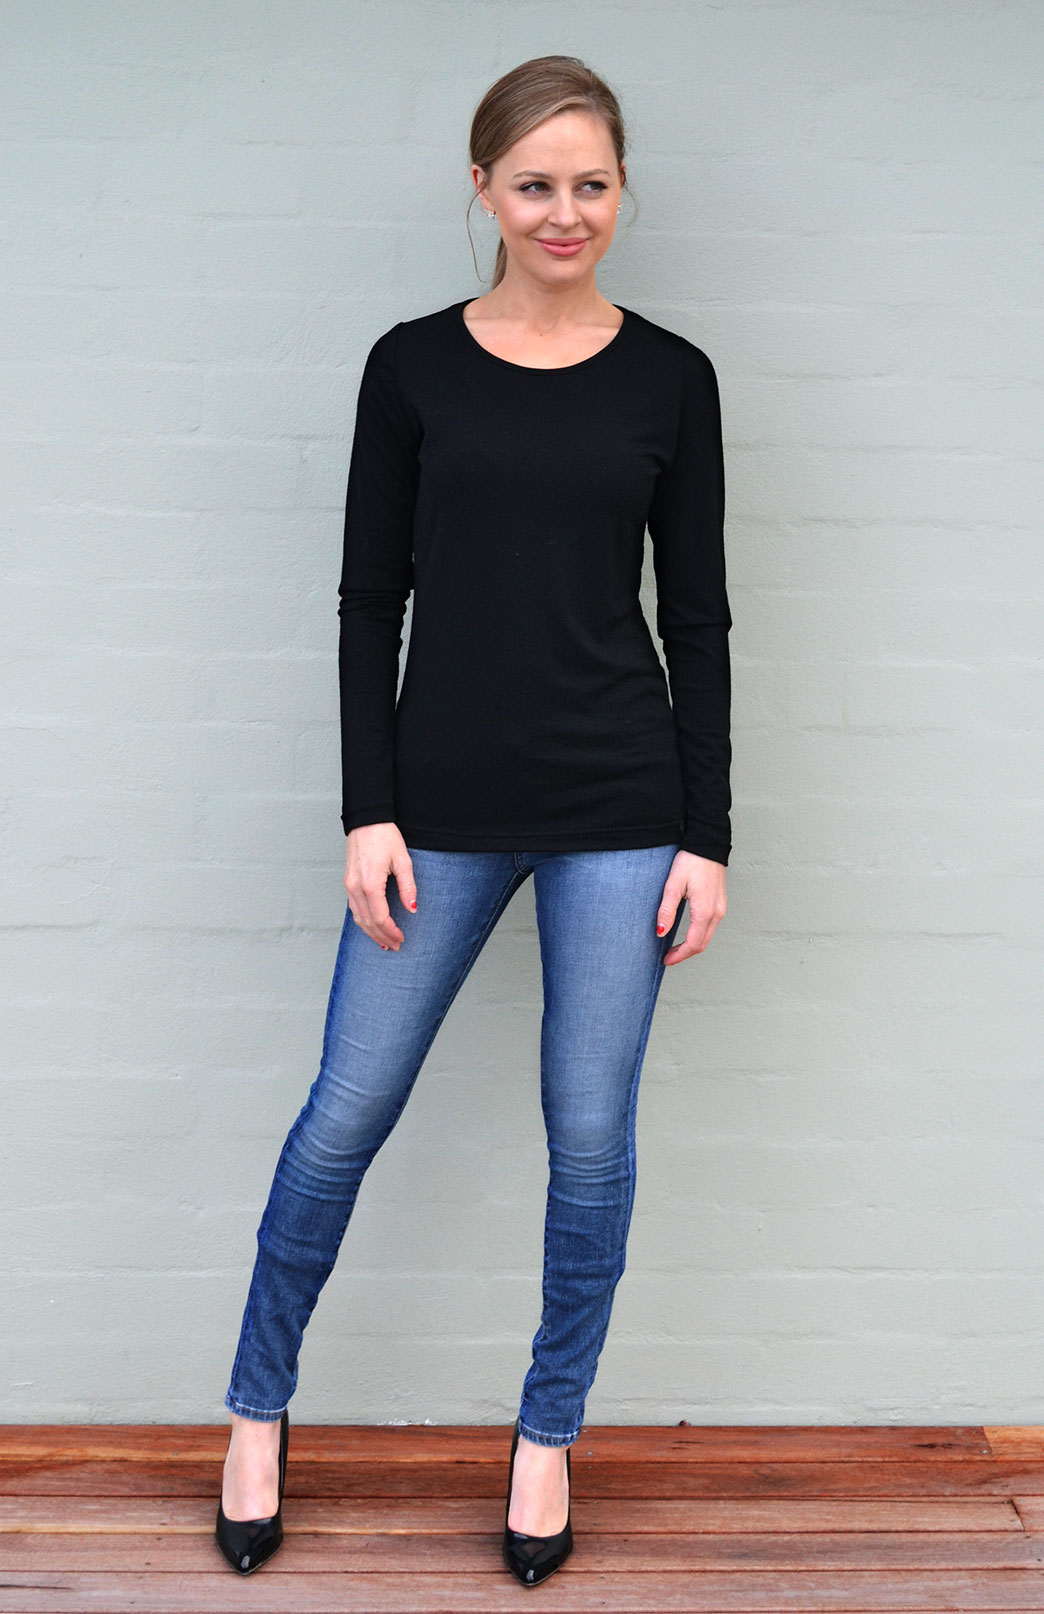 Round Neck Top - Active - Women's Plain Black Outdoor and Activewear Round Neck Thermal Top - Smitten Merino Tasmania Australia